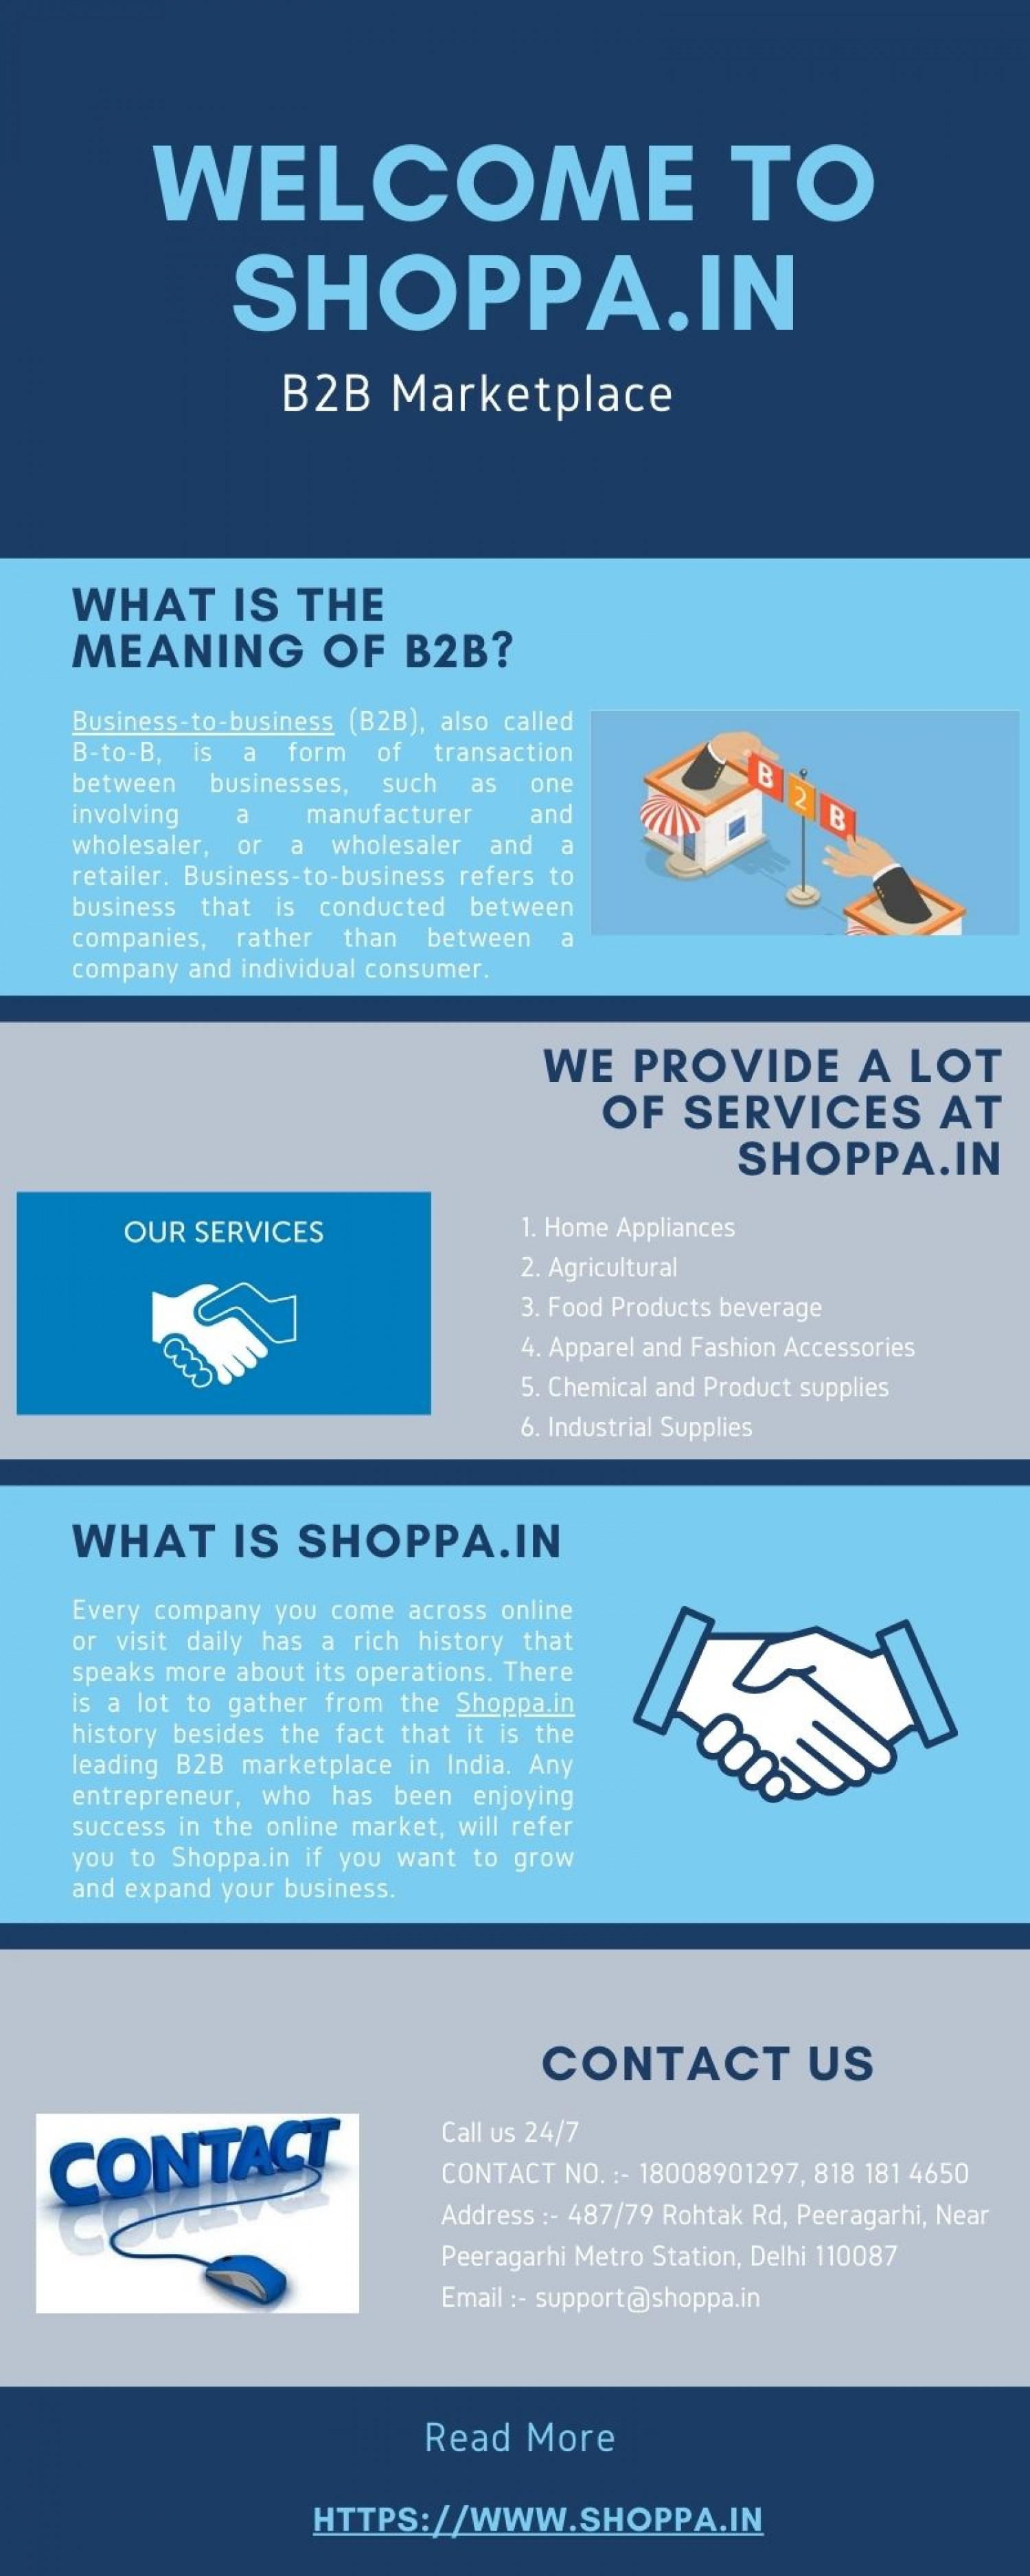 Welcome to shoppa.in India's largest online B2B marketplace for business products, Exporter, importer and services. Infographic